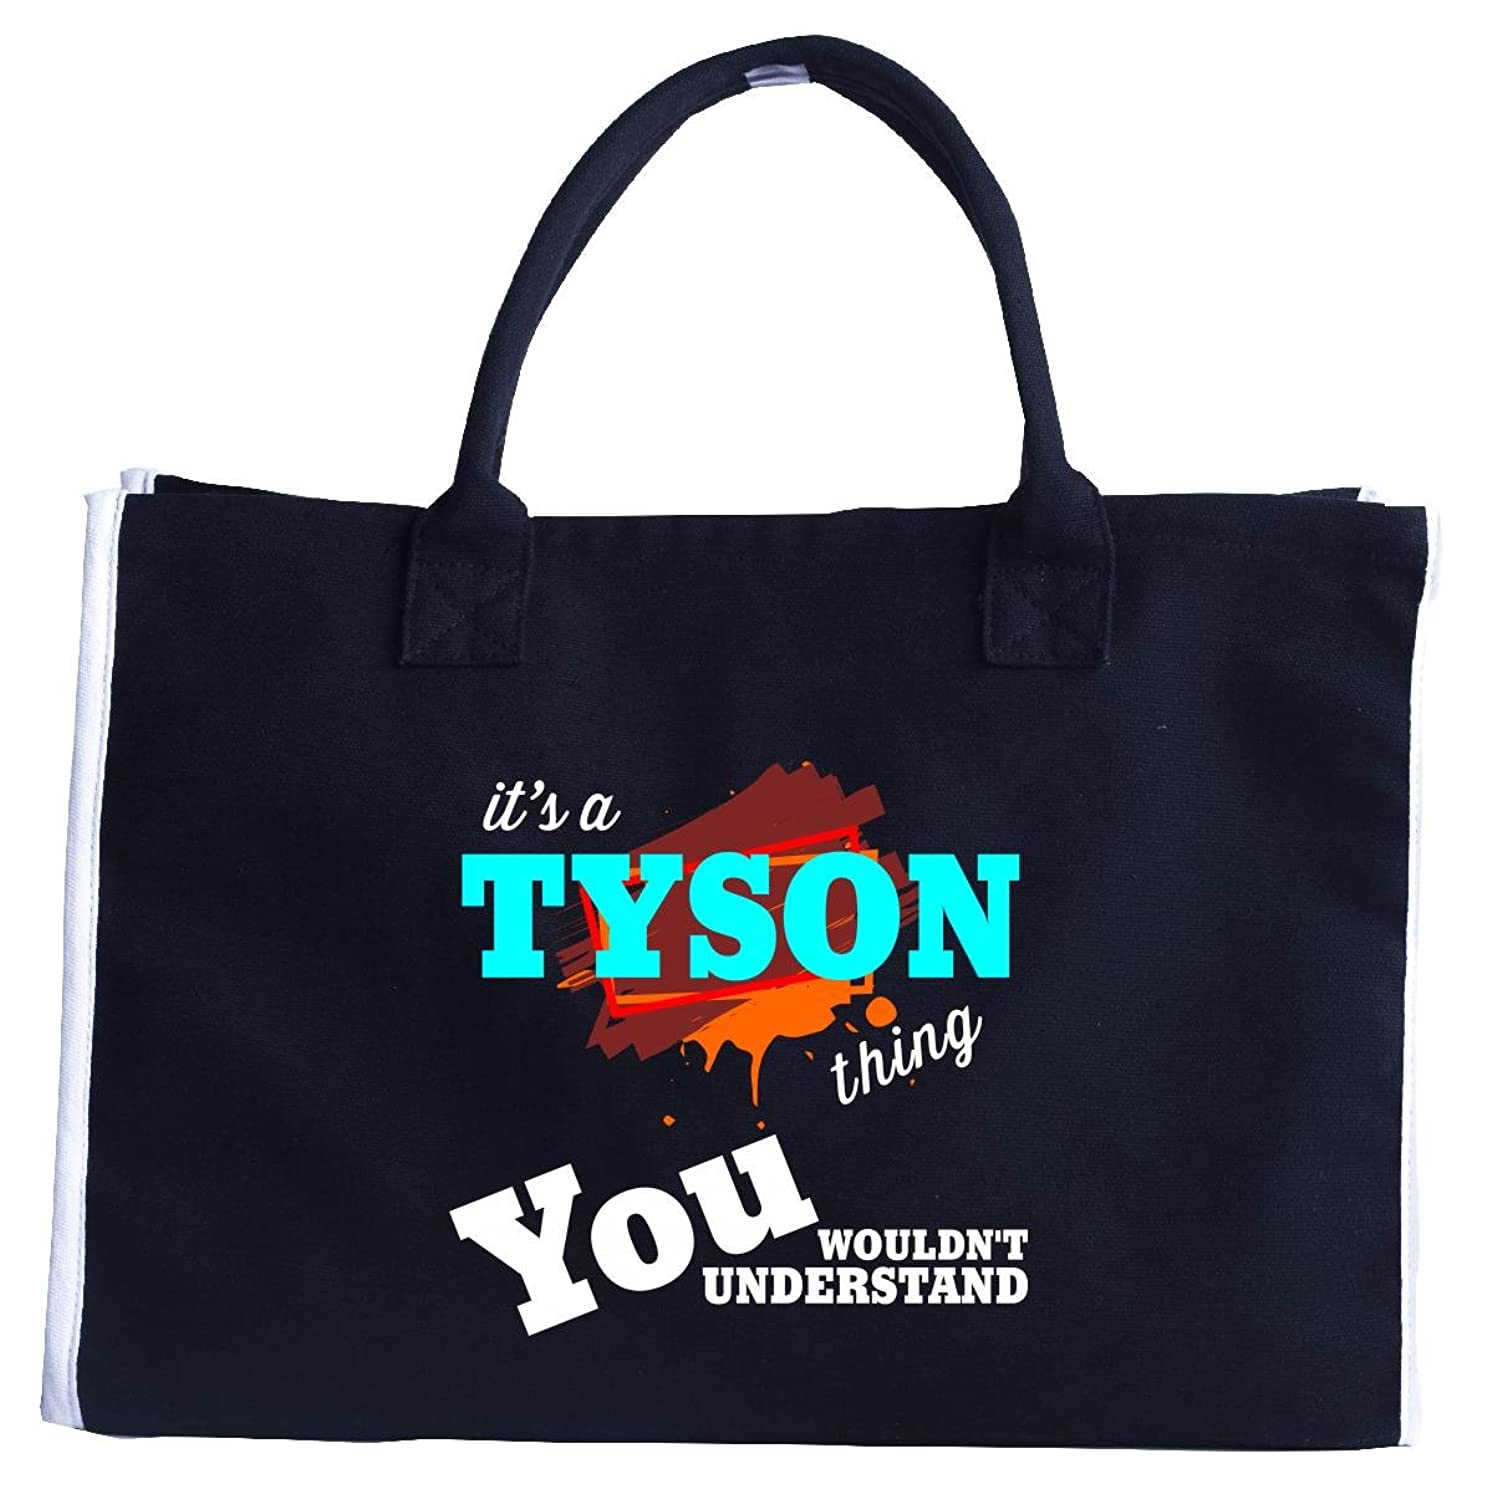 It's A Tyson Thing You Wouldn't Understand V4 - Tote Bag